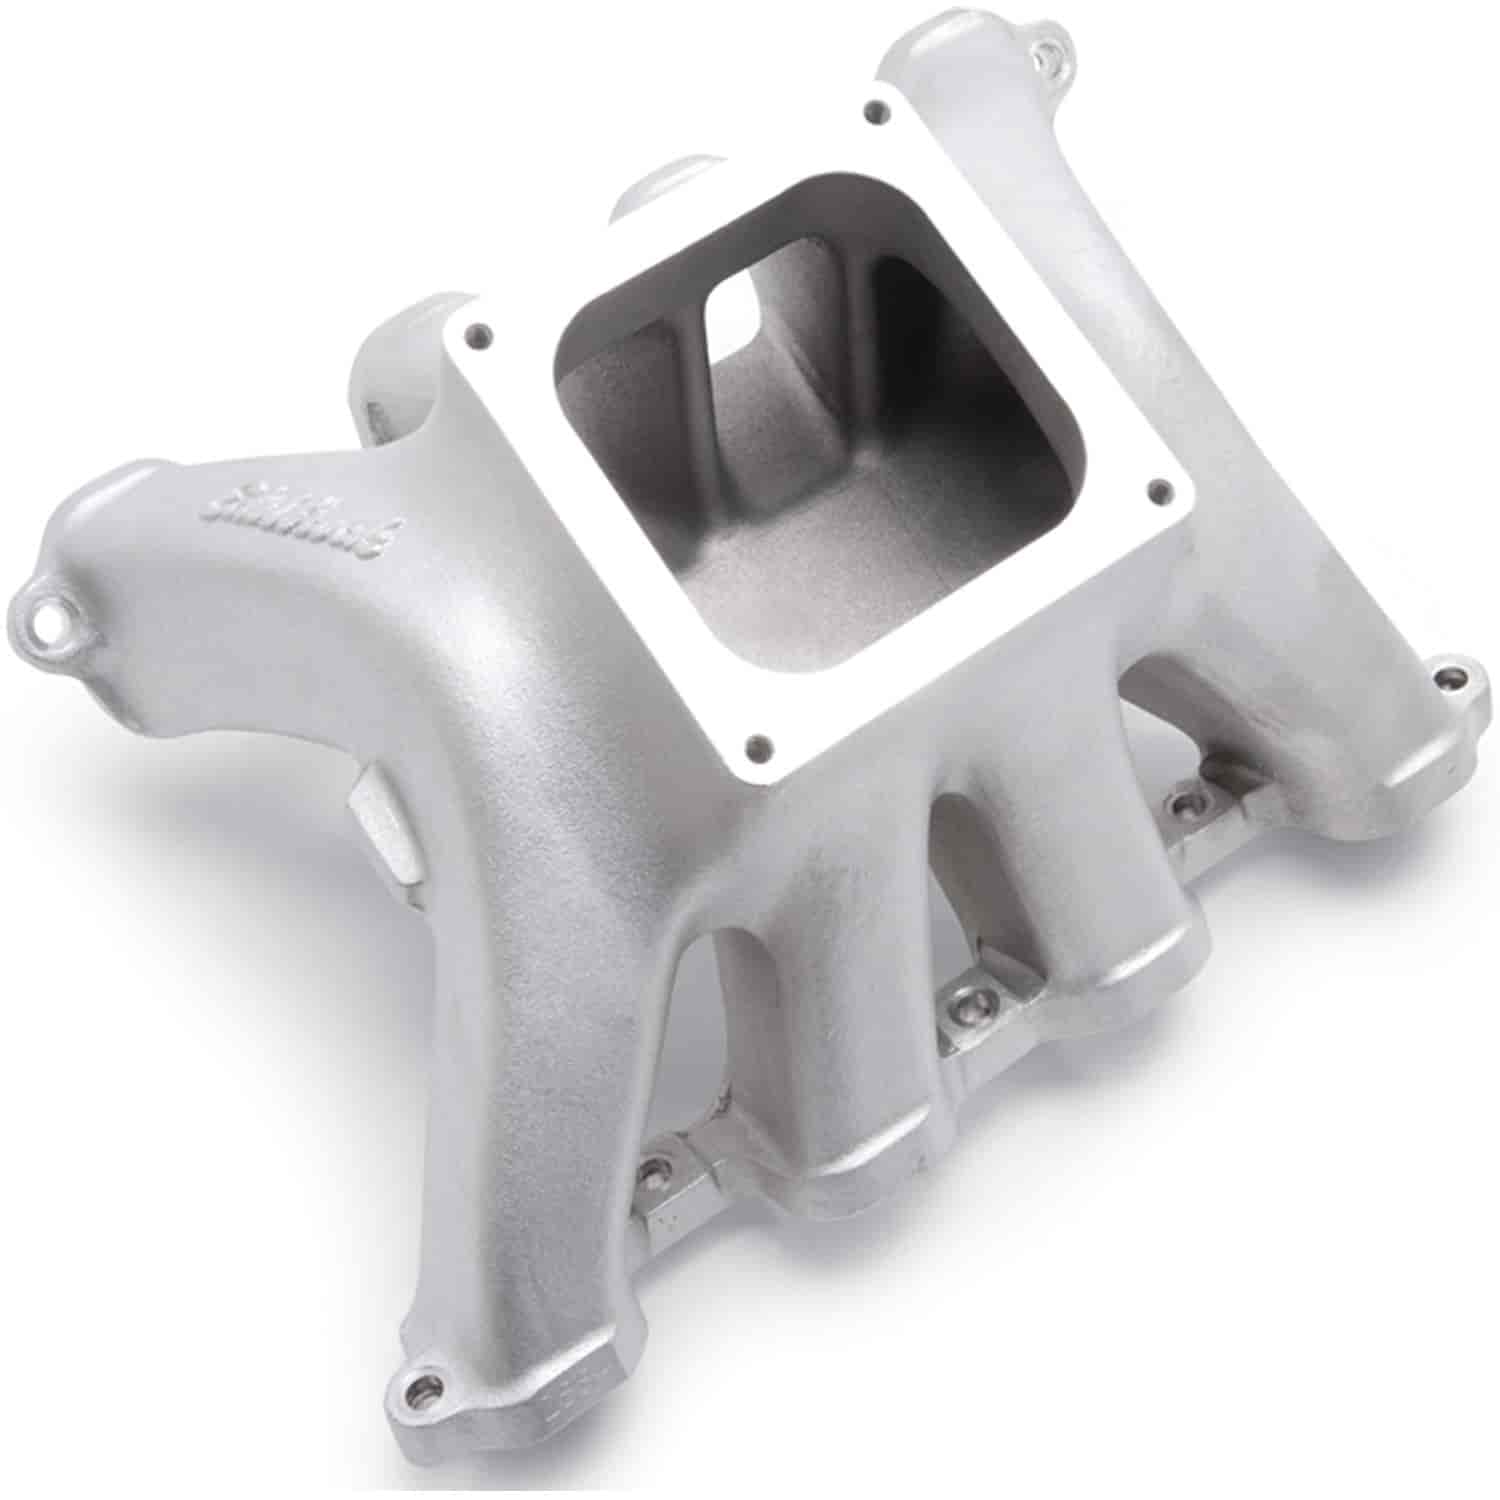 Edelbrock Victor Series Intake Manifolds For Small Block